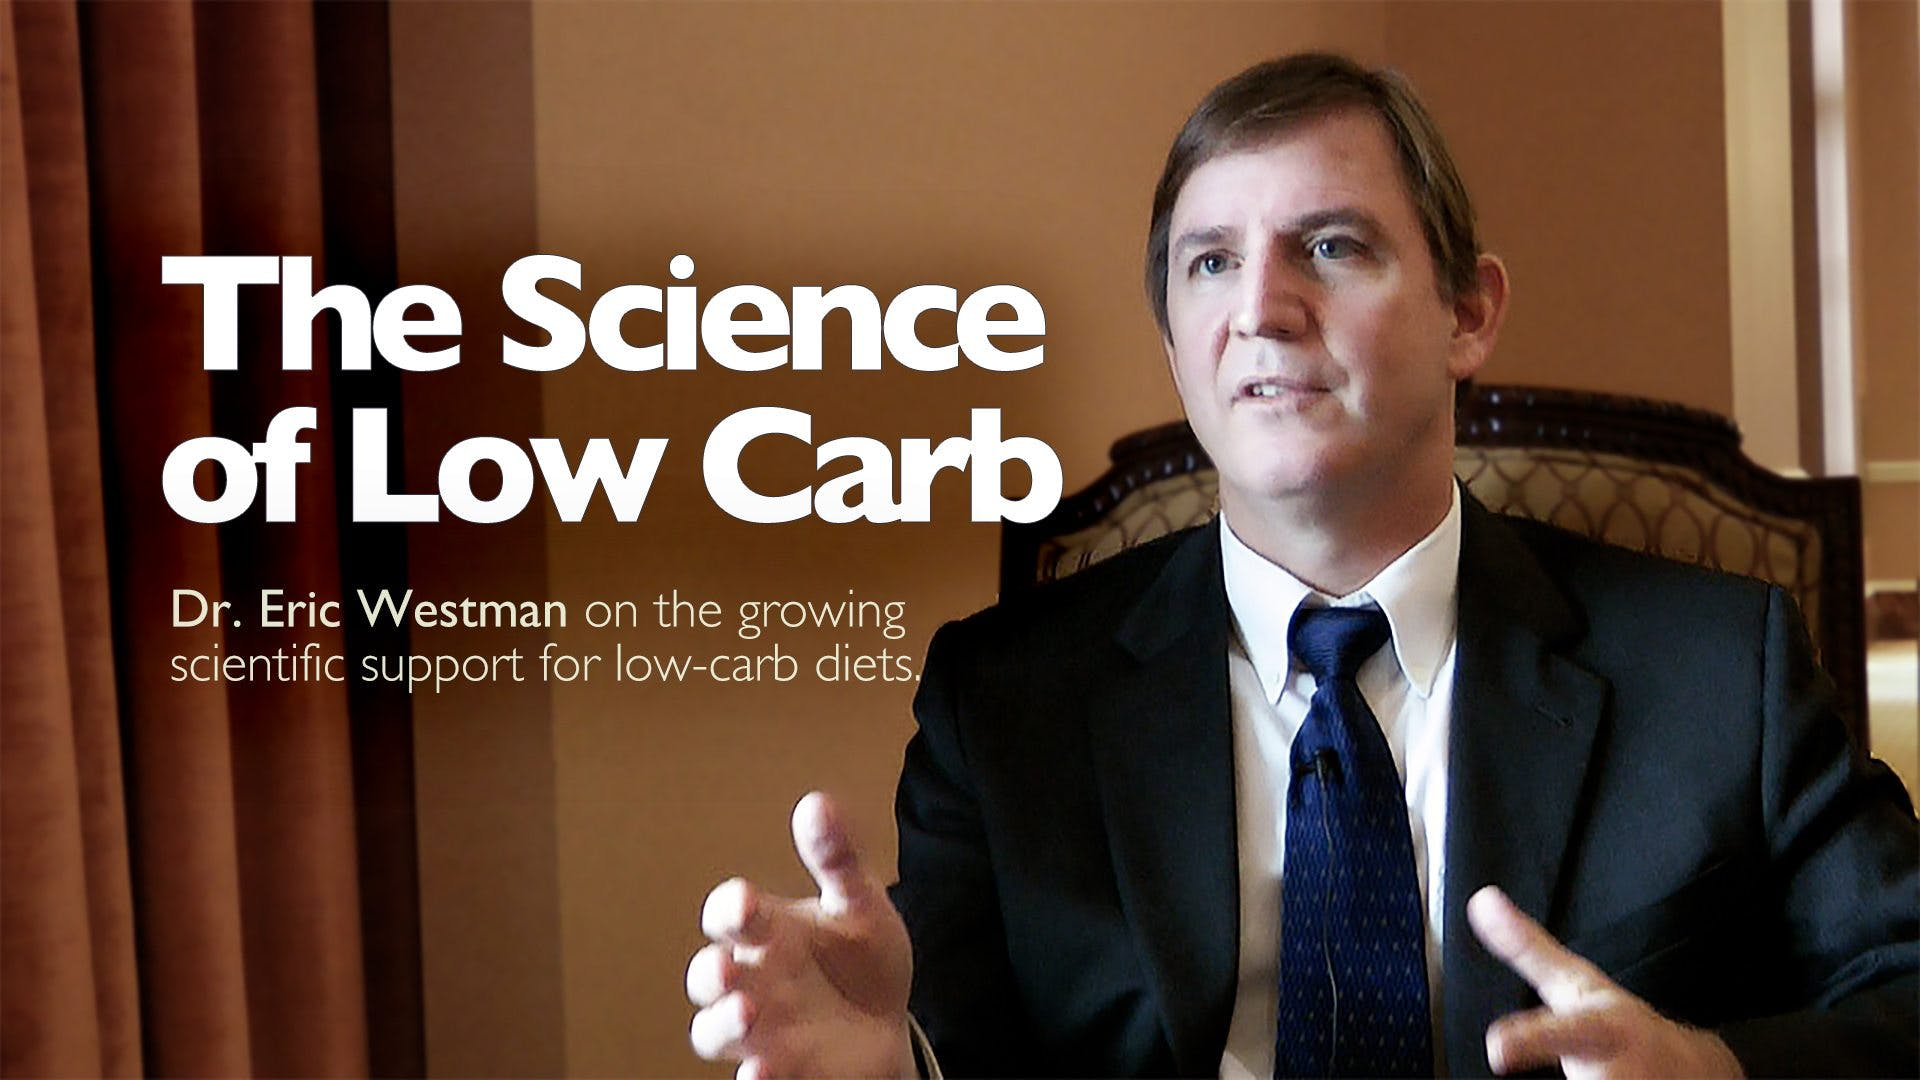 The Science of Low Carb